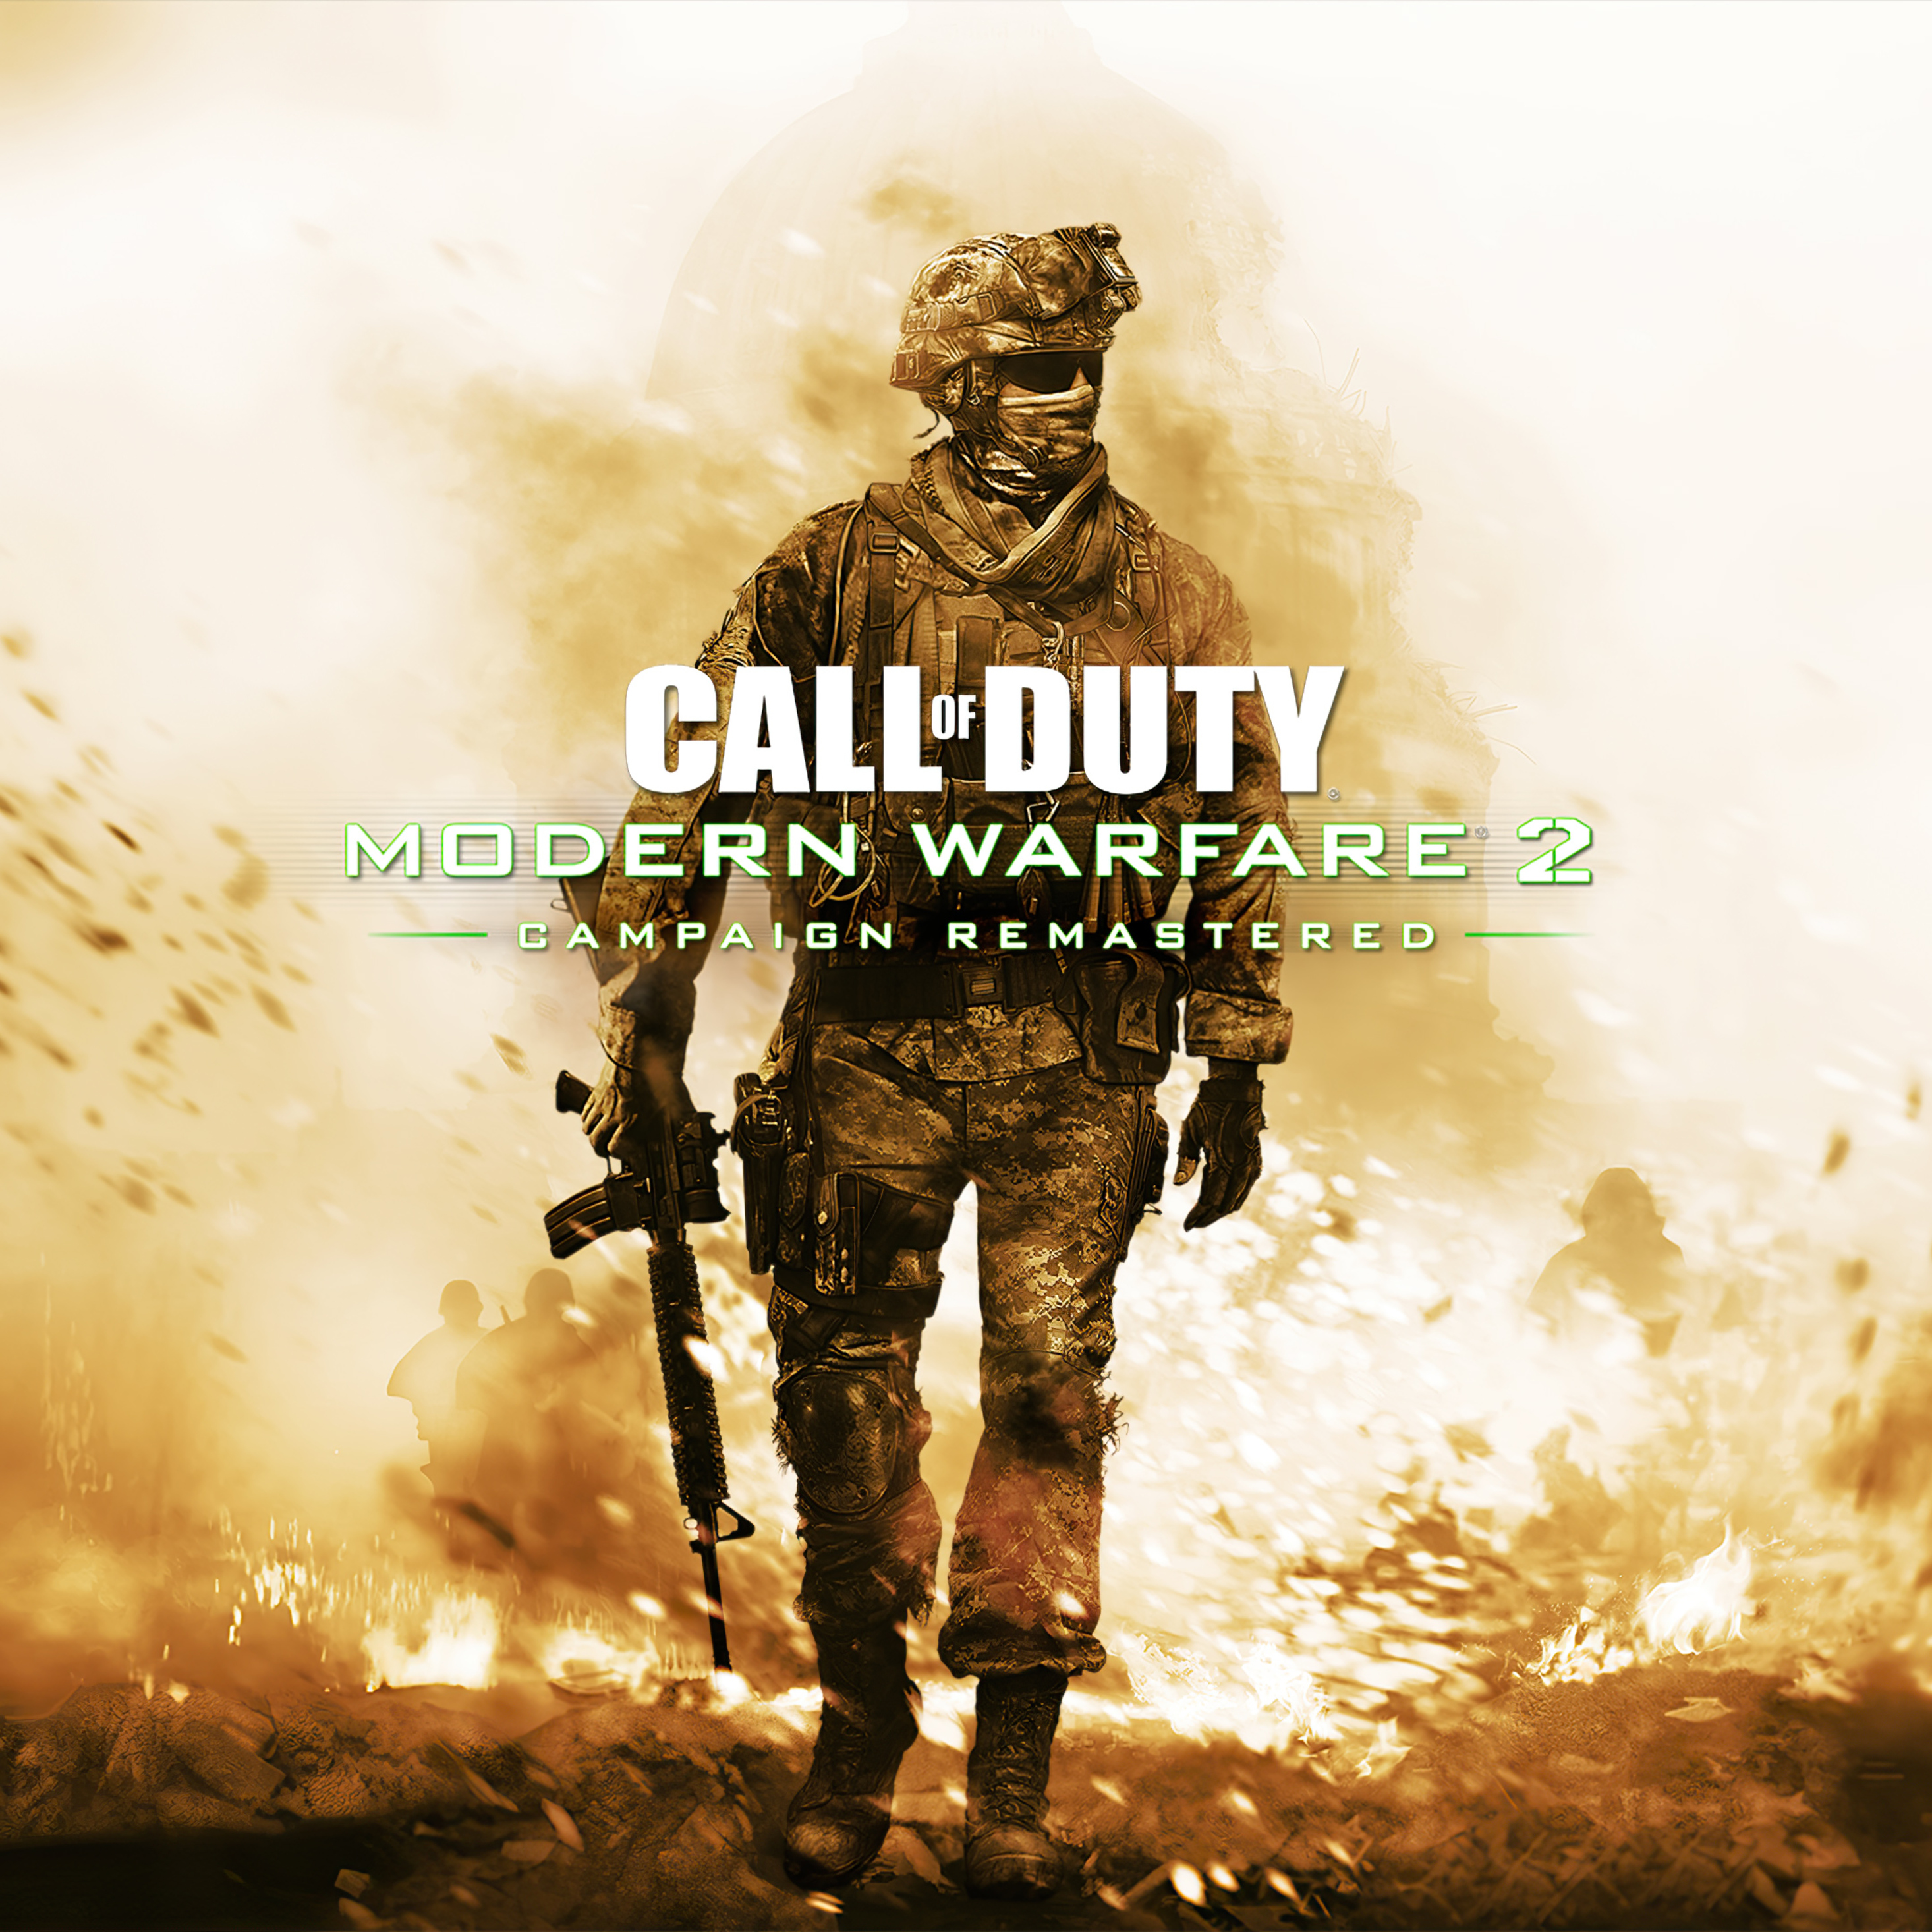 2932x2932 Call Of Duty Modern Warfare 2 Campaign Remastered 4k